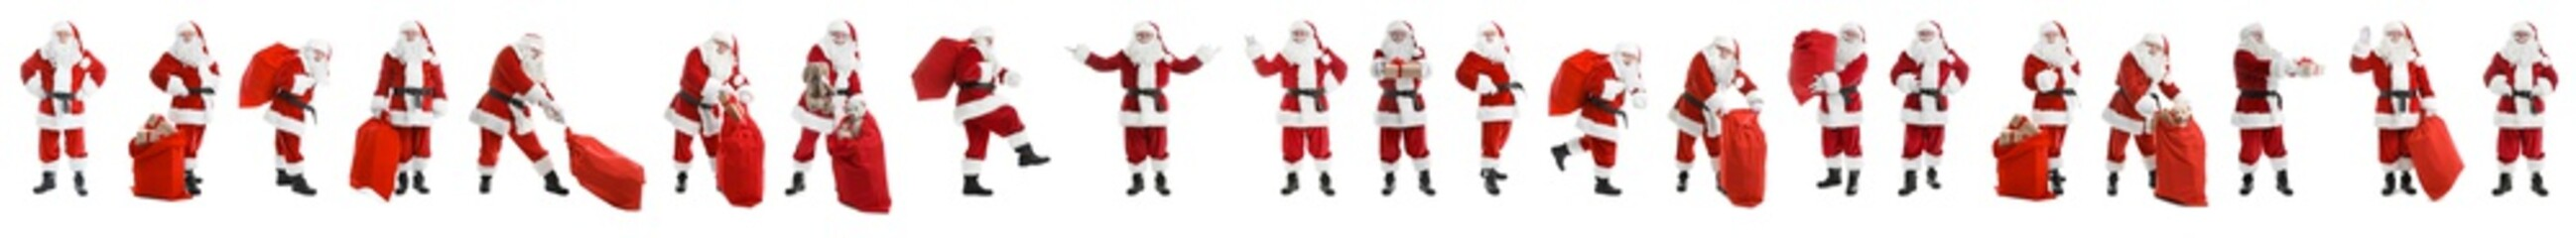 Set of authentic Santa Claus on white background. Banner design